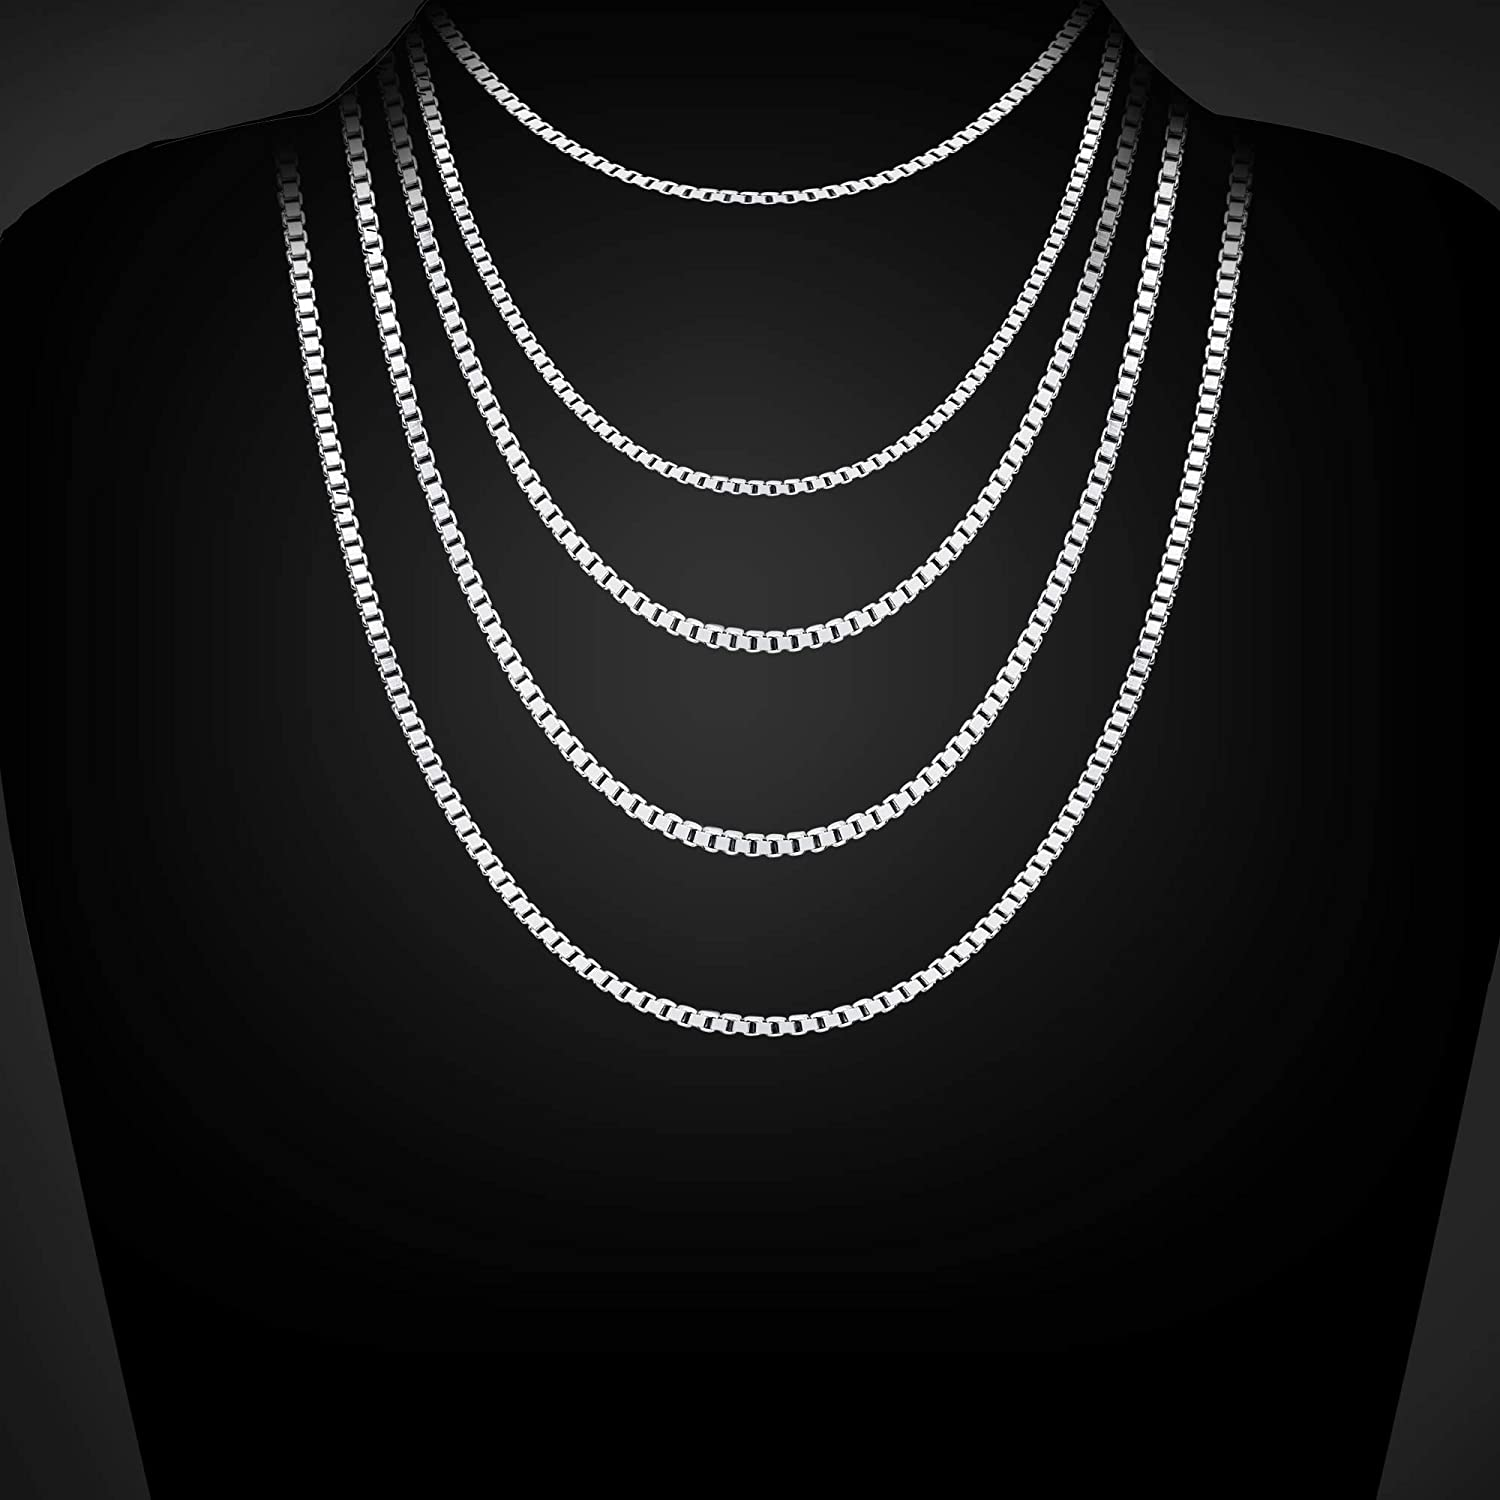 Adramata 925 Sterling Silver Chain Necklace for Mother 1MM Thin Rope/&Box Chain Necklace Fashion Mothers Day Gifts Available 16 IN-22IN